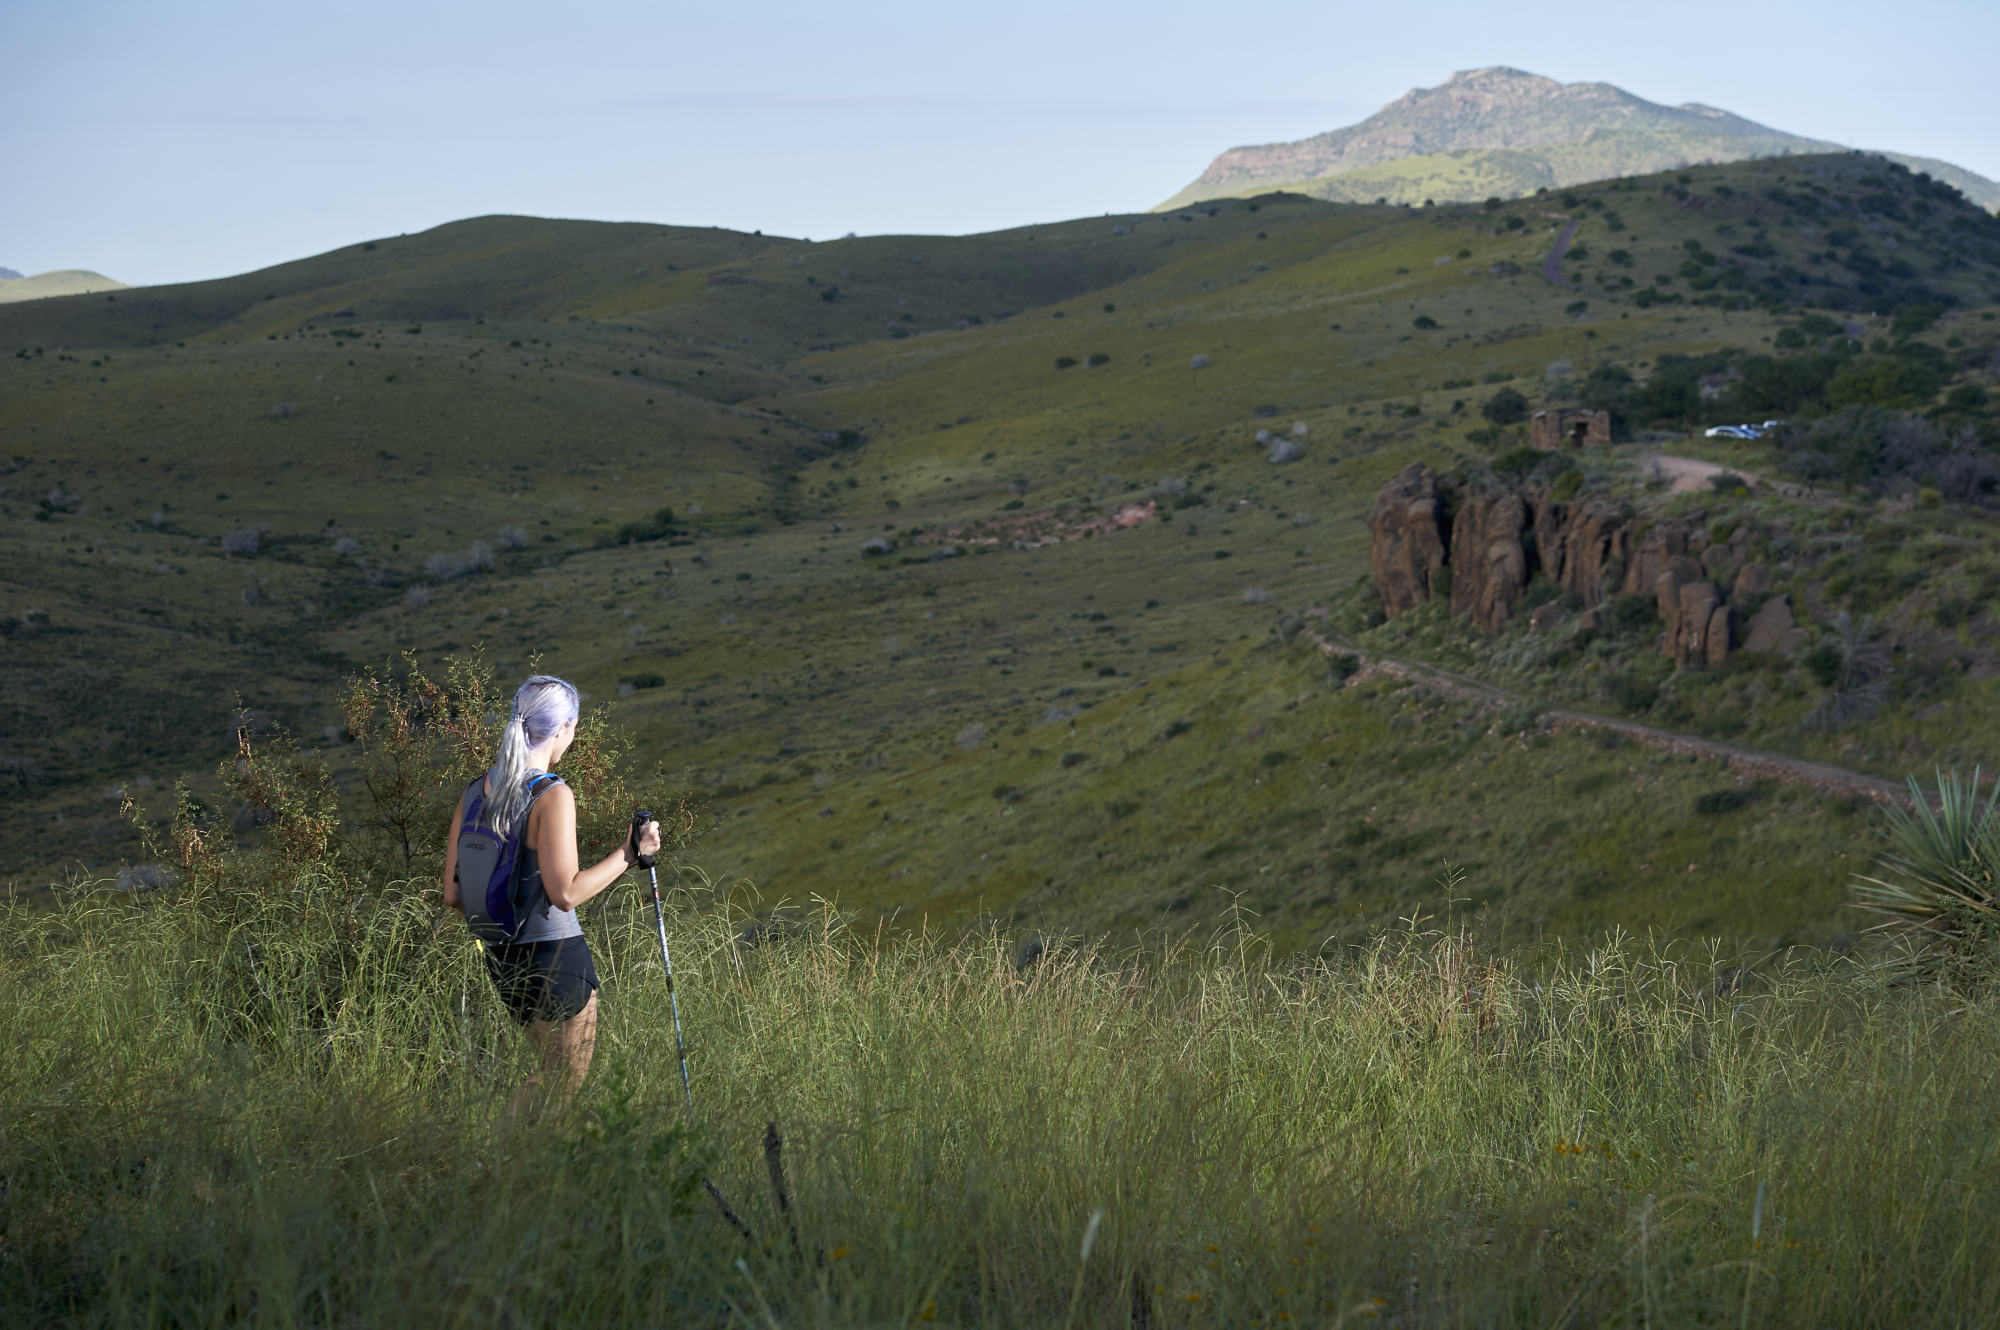 A runner pauses to appreciate the view from the top of the ridge during the race.